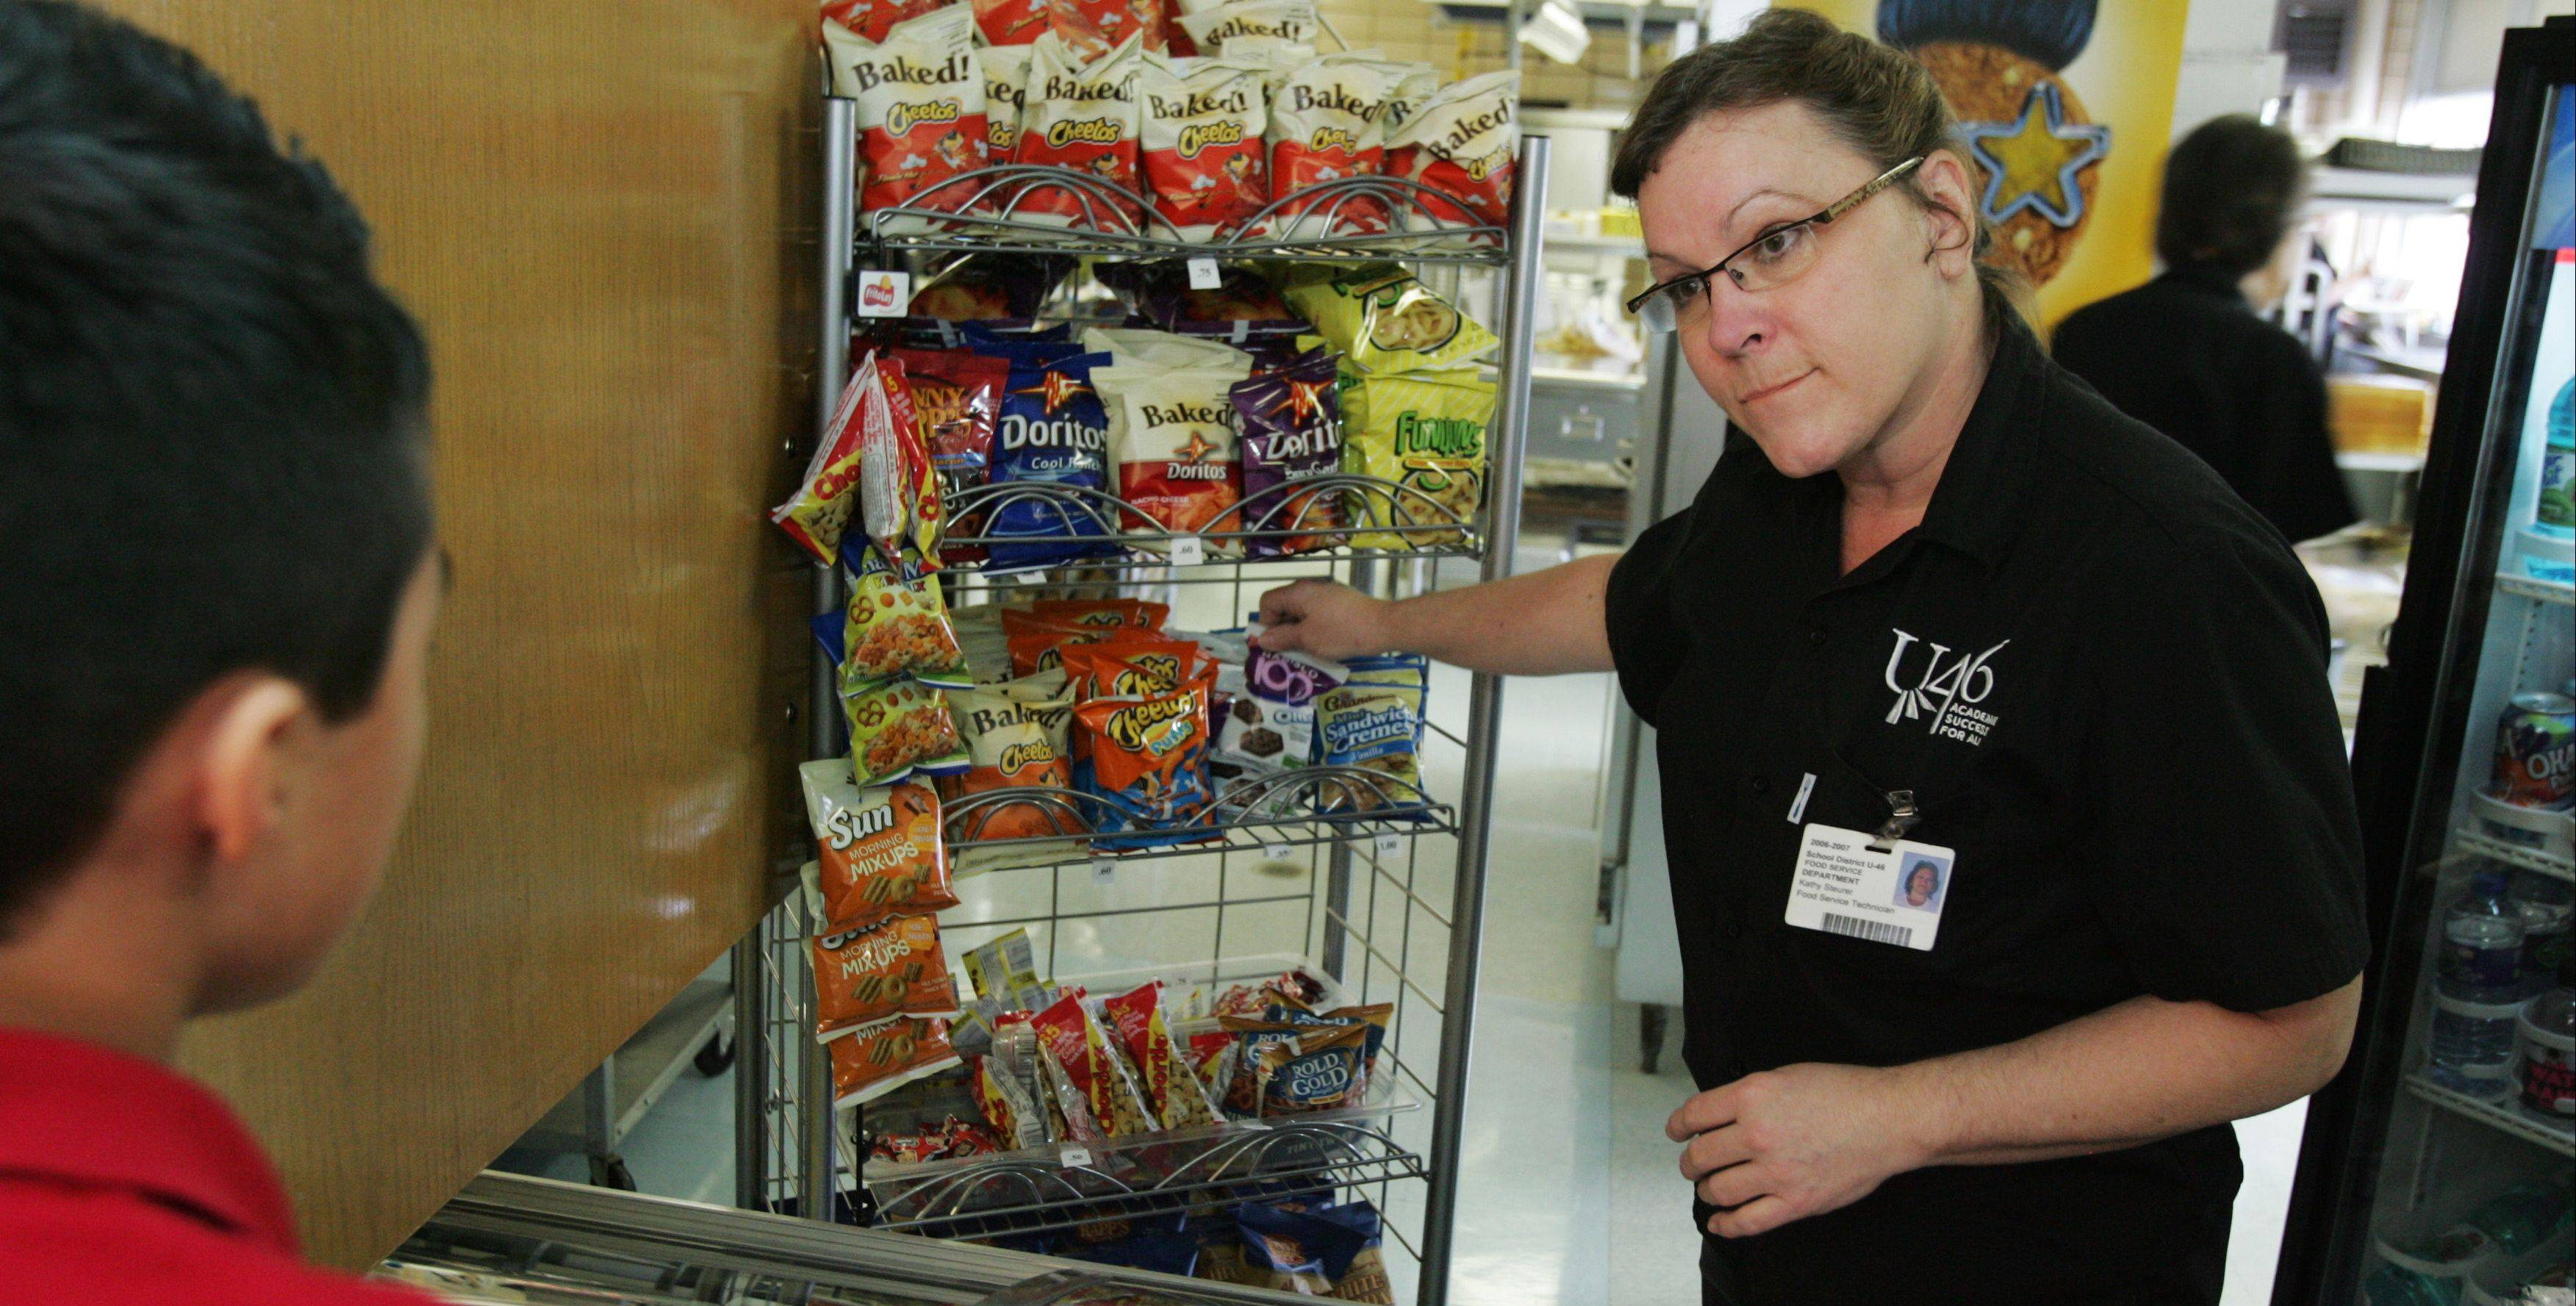 Steurer works the snack window in the school cafeteria where she rotates daily through different duties along with other food service workers.